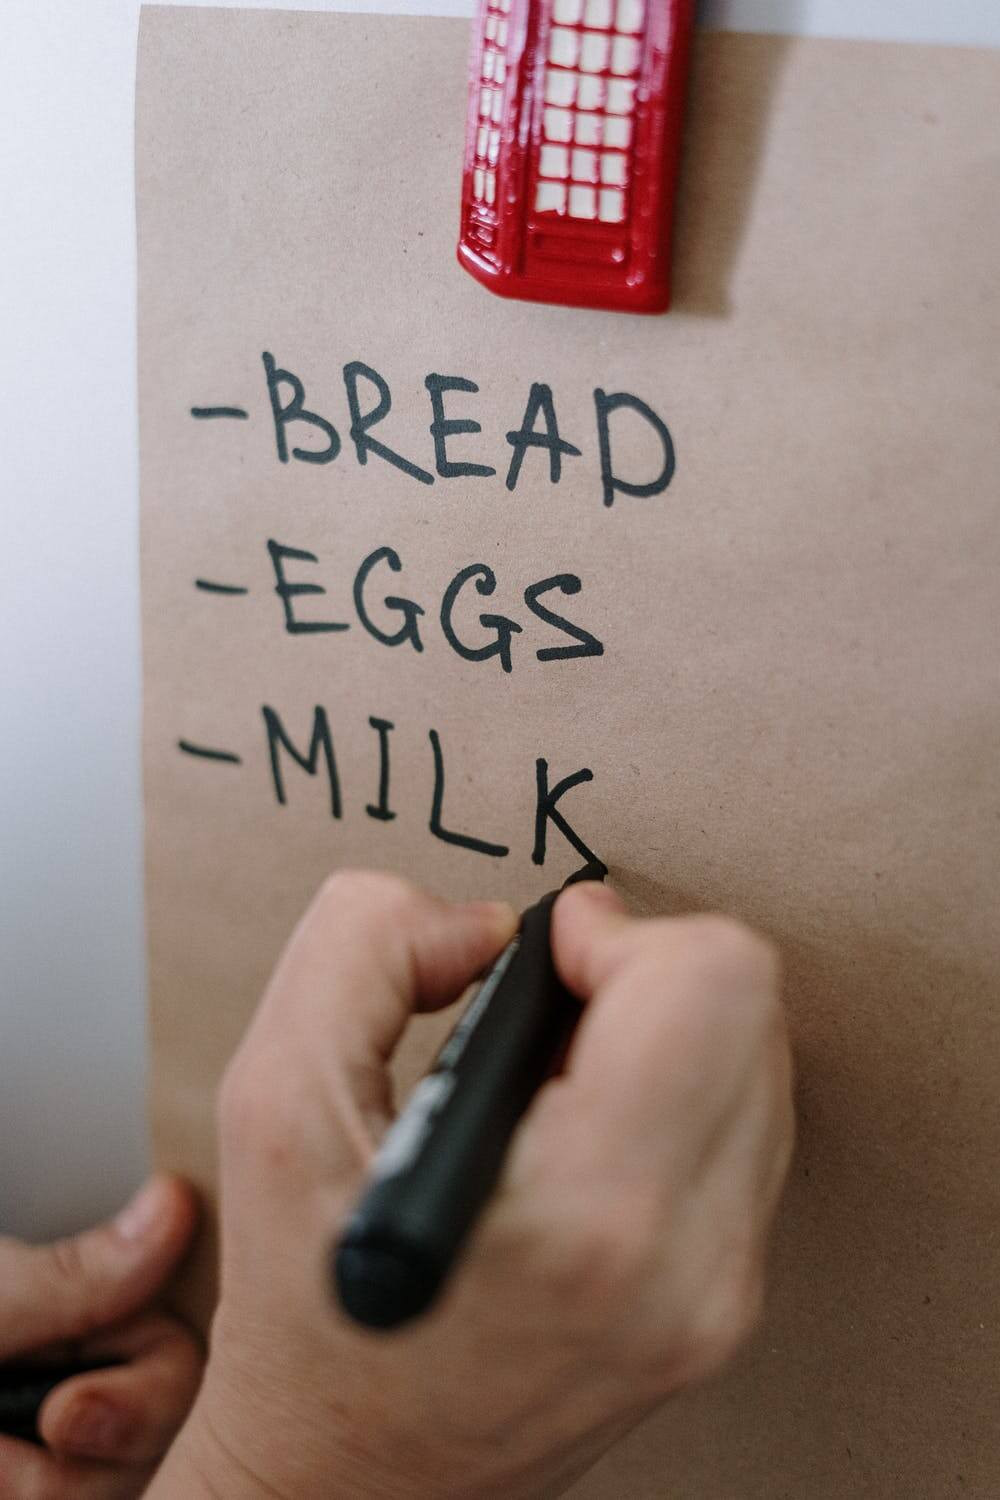 A person writing a shopping list which consists of bread, eggs and milk